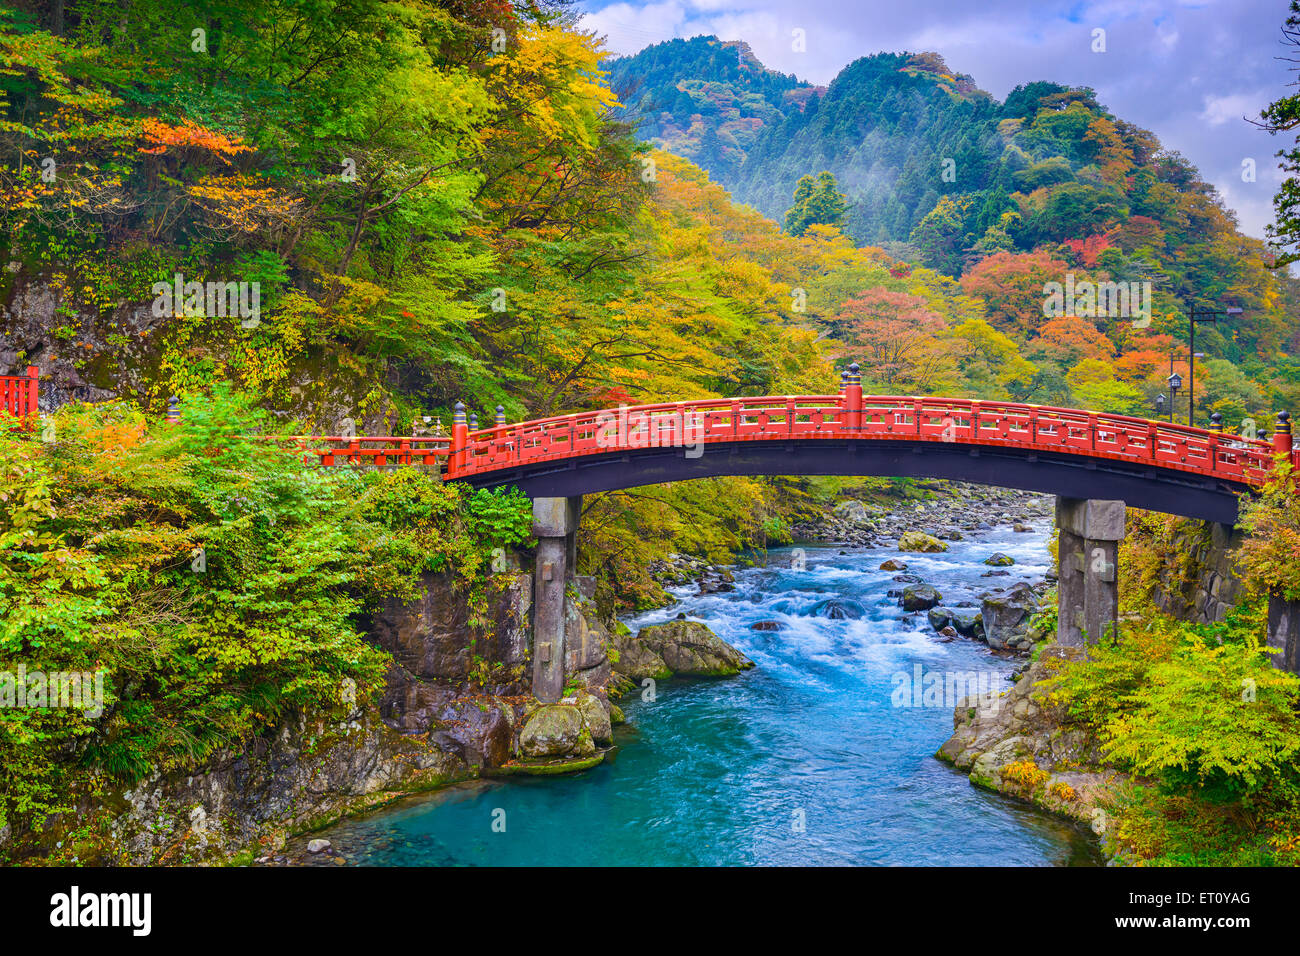 Nikko, Japan at the Shinkyo Bridge over the Daiwa River. - Stock Image